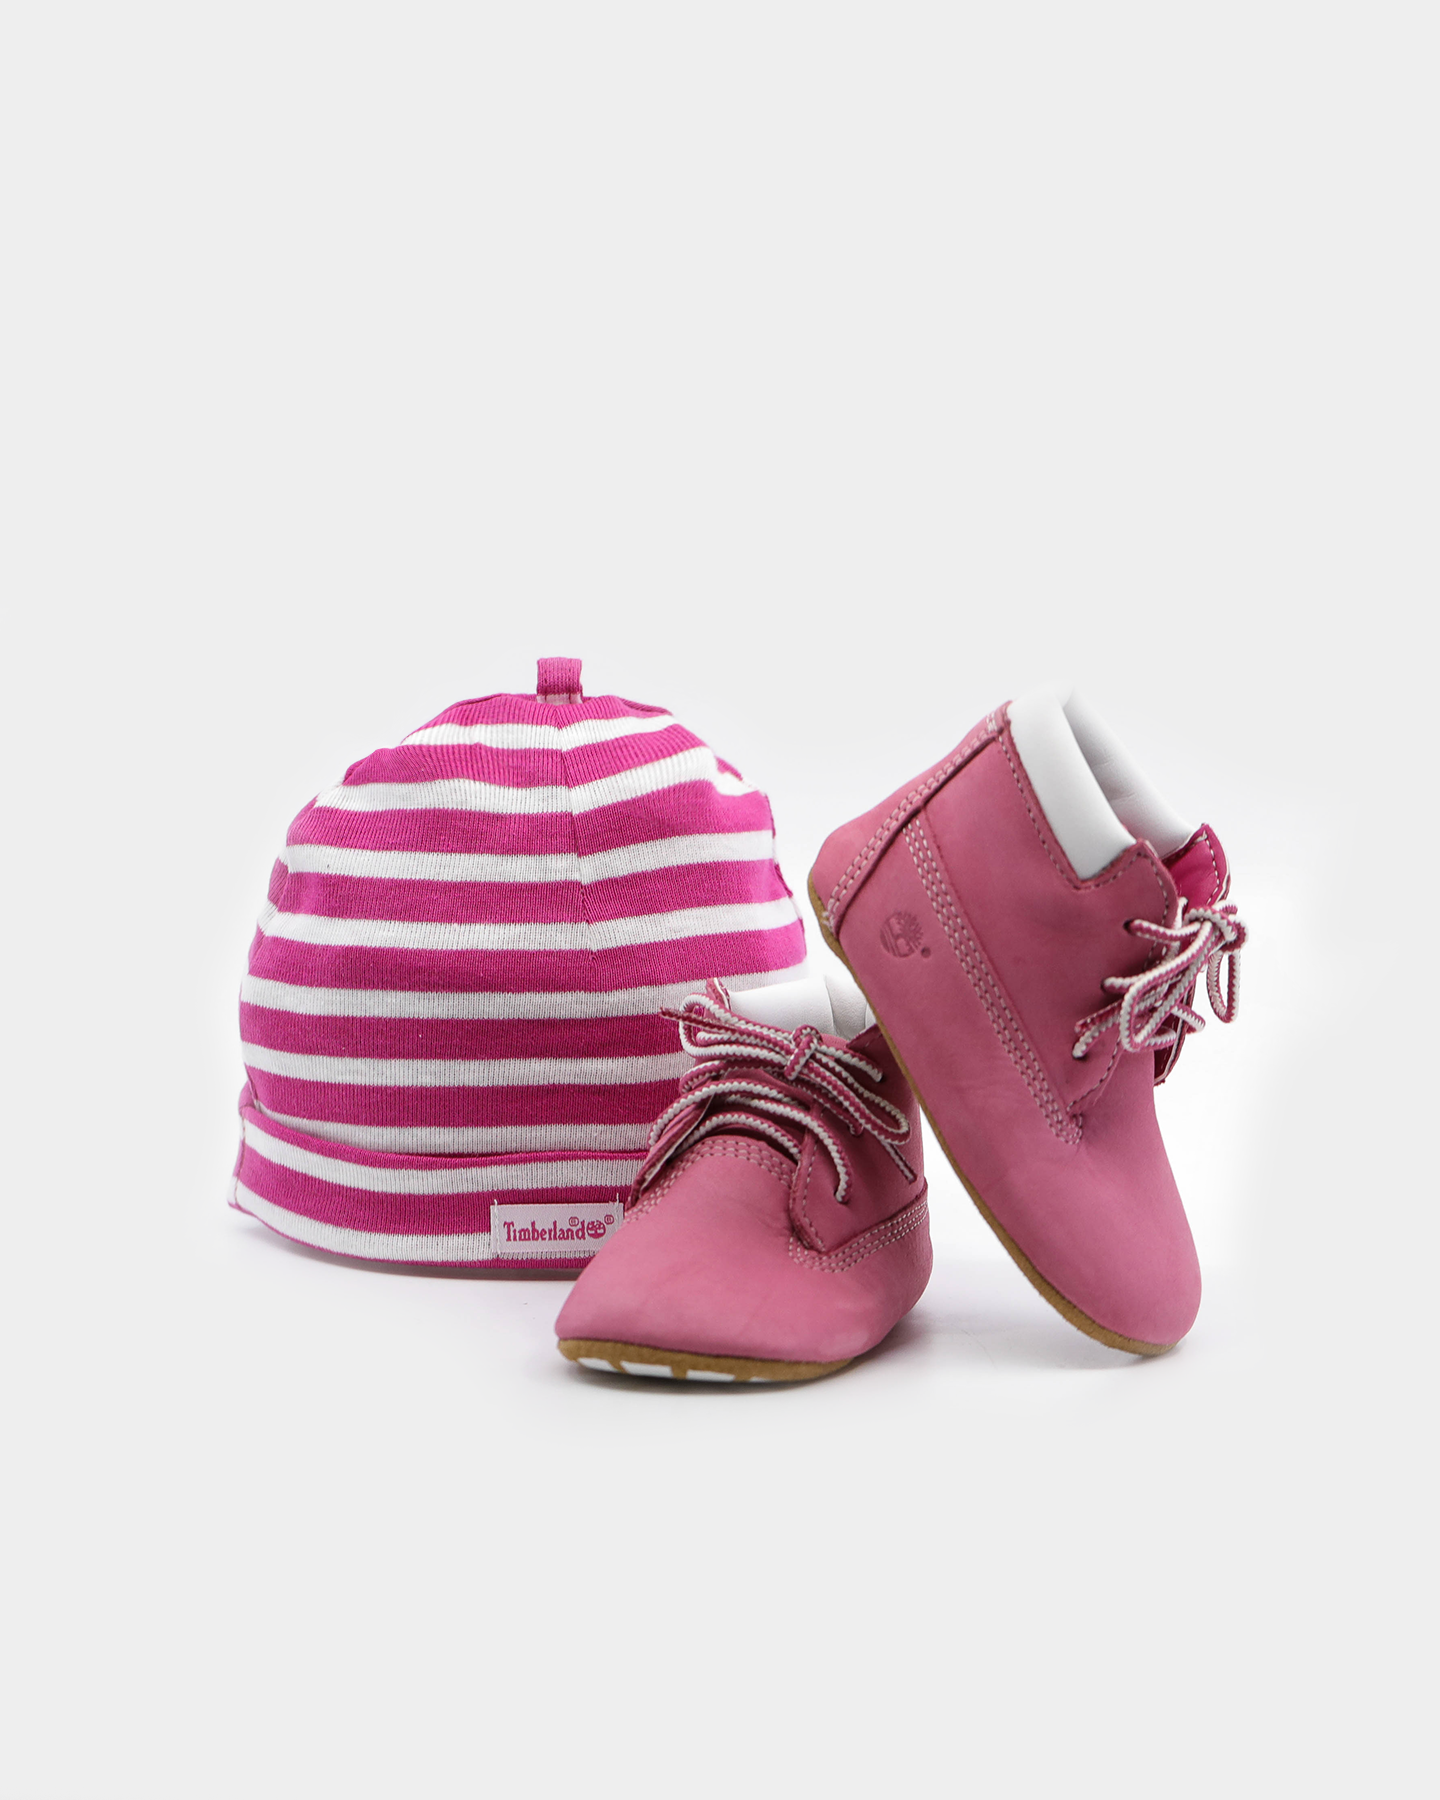 Timberland Crib Casual Booties Baby Shoes Cute Fuschia Pink Girls/' Infant